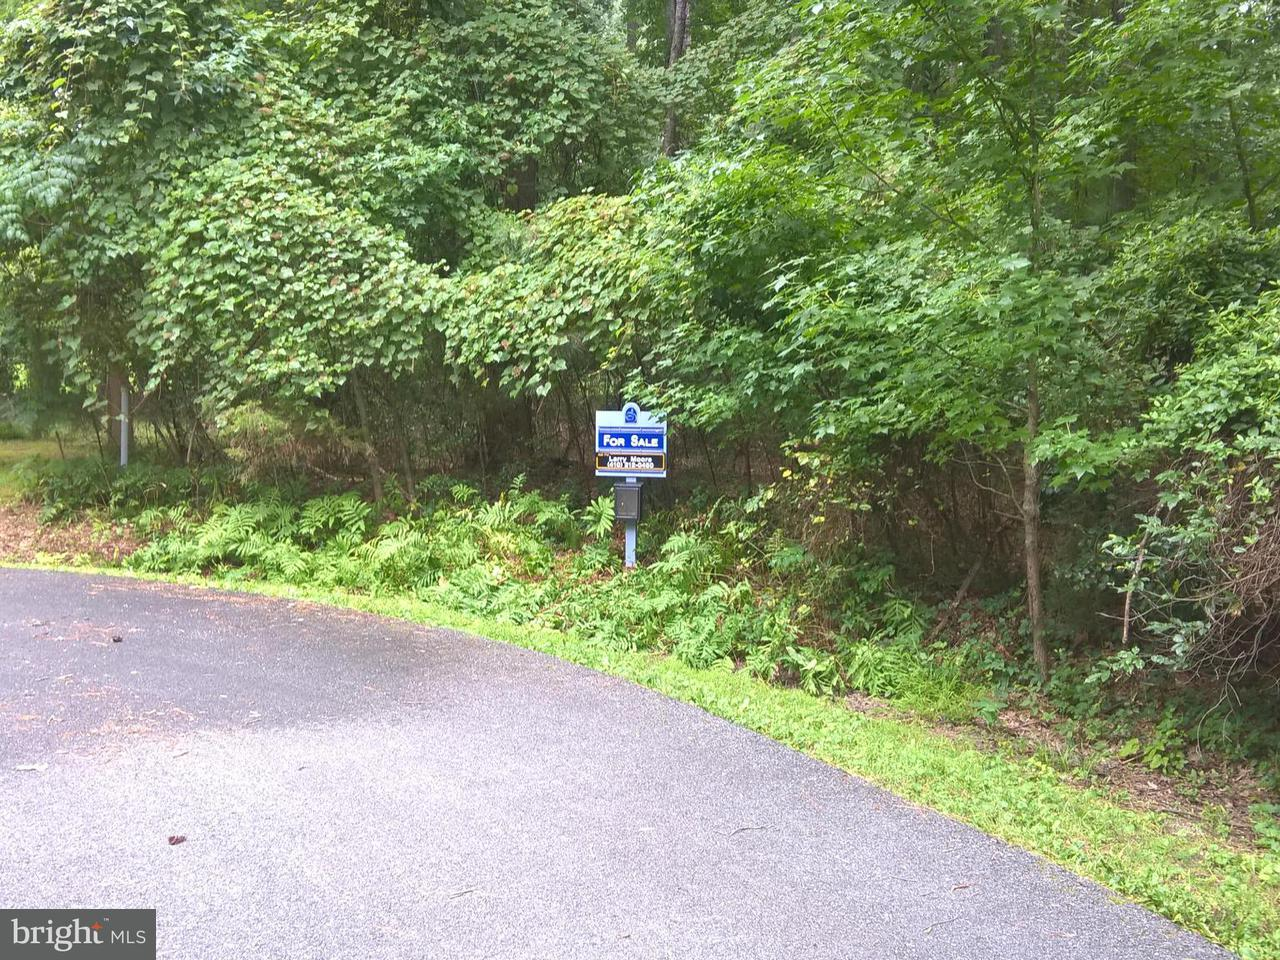 Land for Sale at 14735 Locust Ct Issue, Maryland 20645 United States